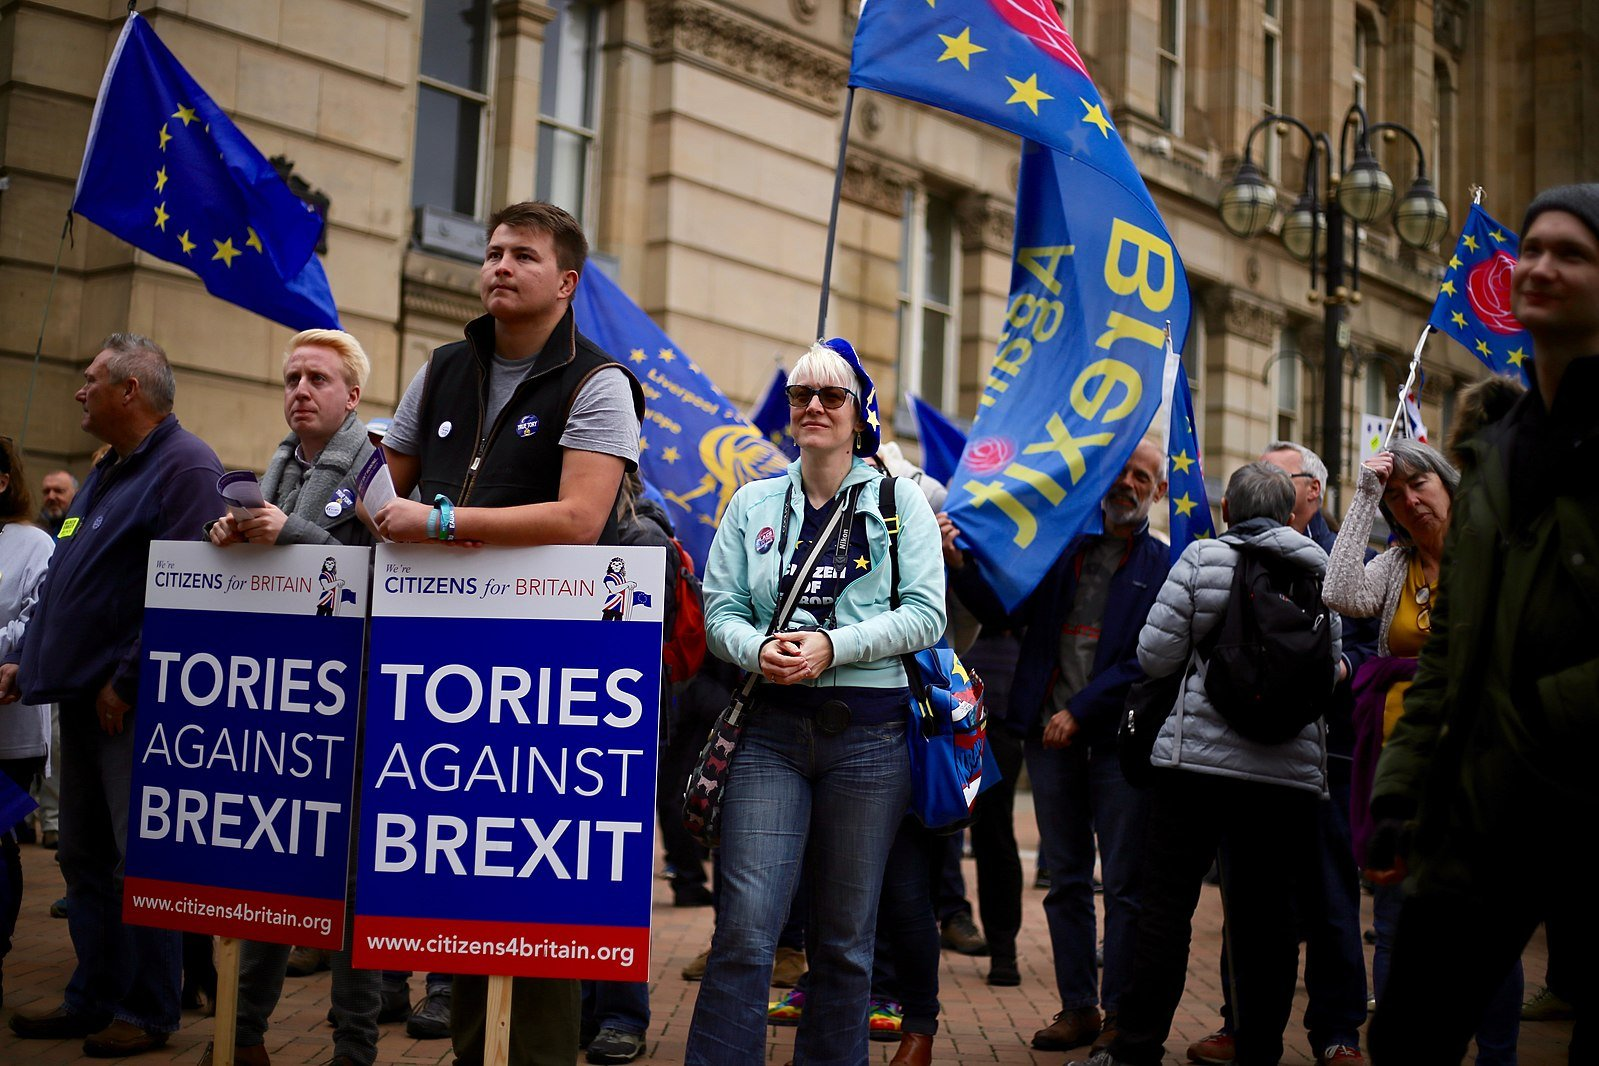 Birmingham's Bin-Brexit rally for the Conservative Party conference shows divided state Britain is in.